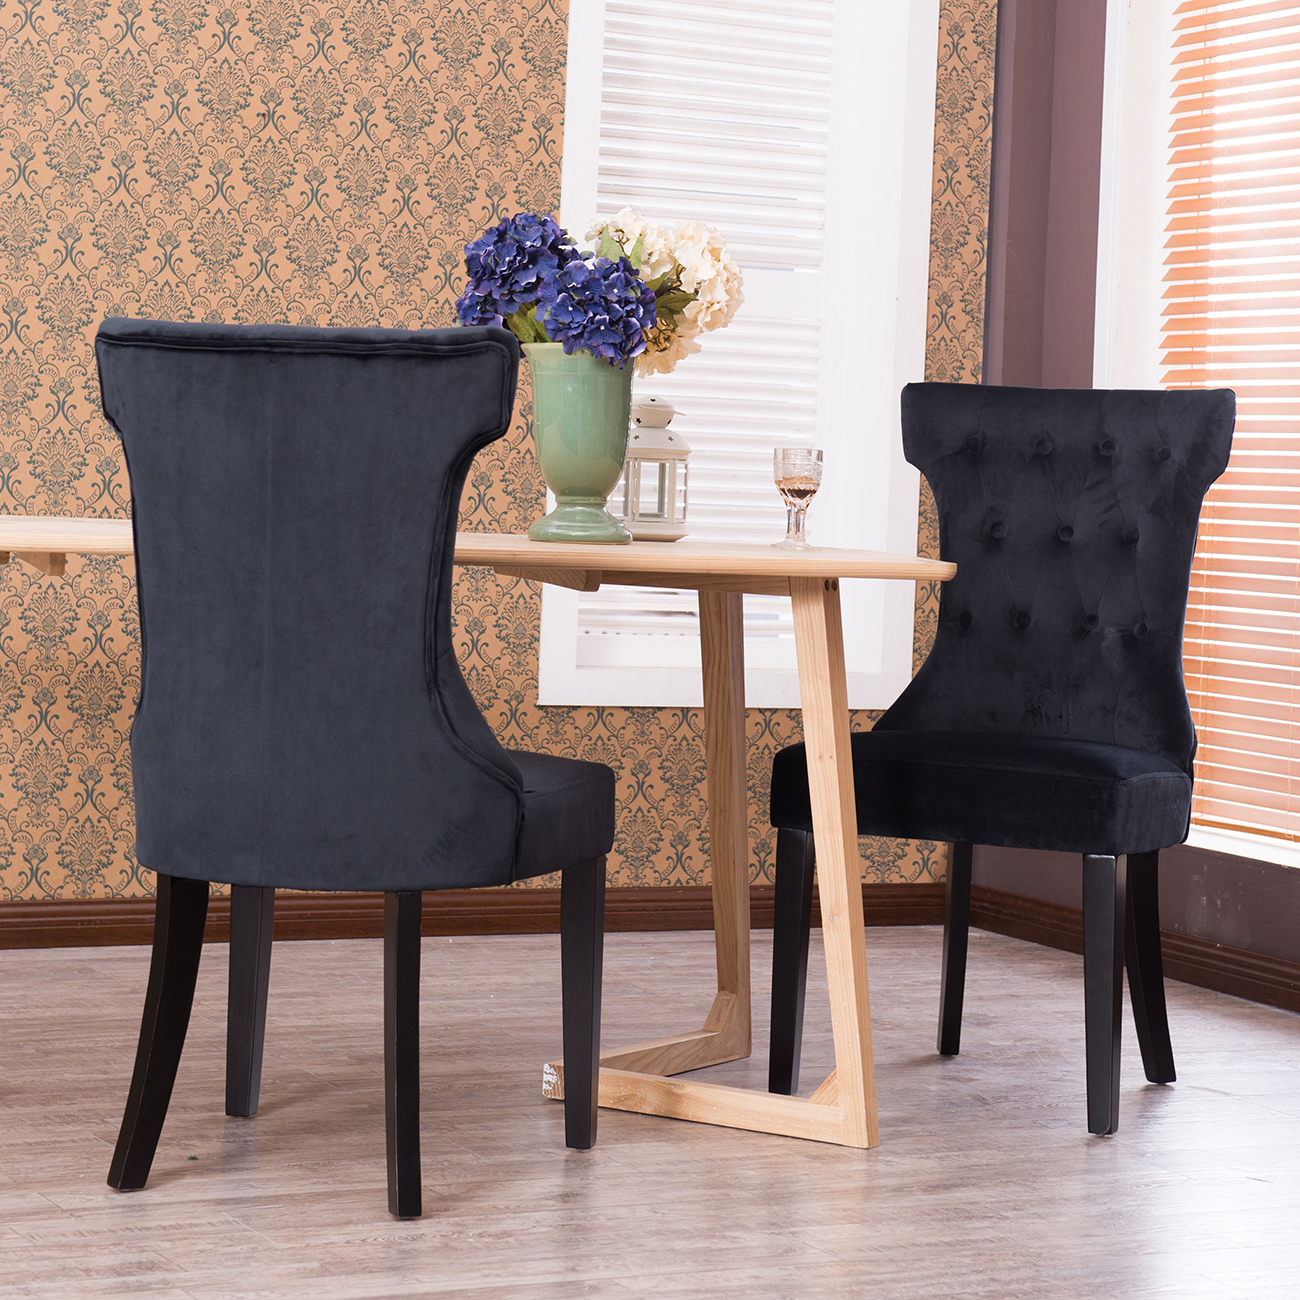 Set Of 2 Modern Living Room Furniture Tufted Faux Leather Dining Chairs Black Ebay